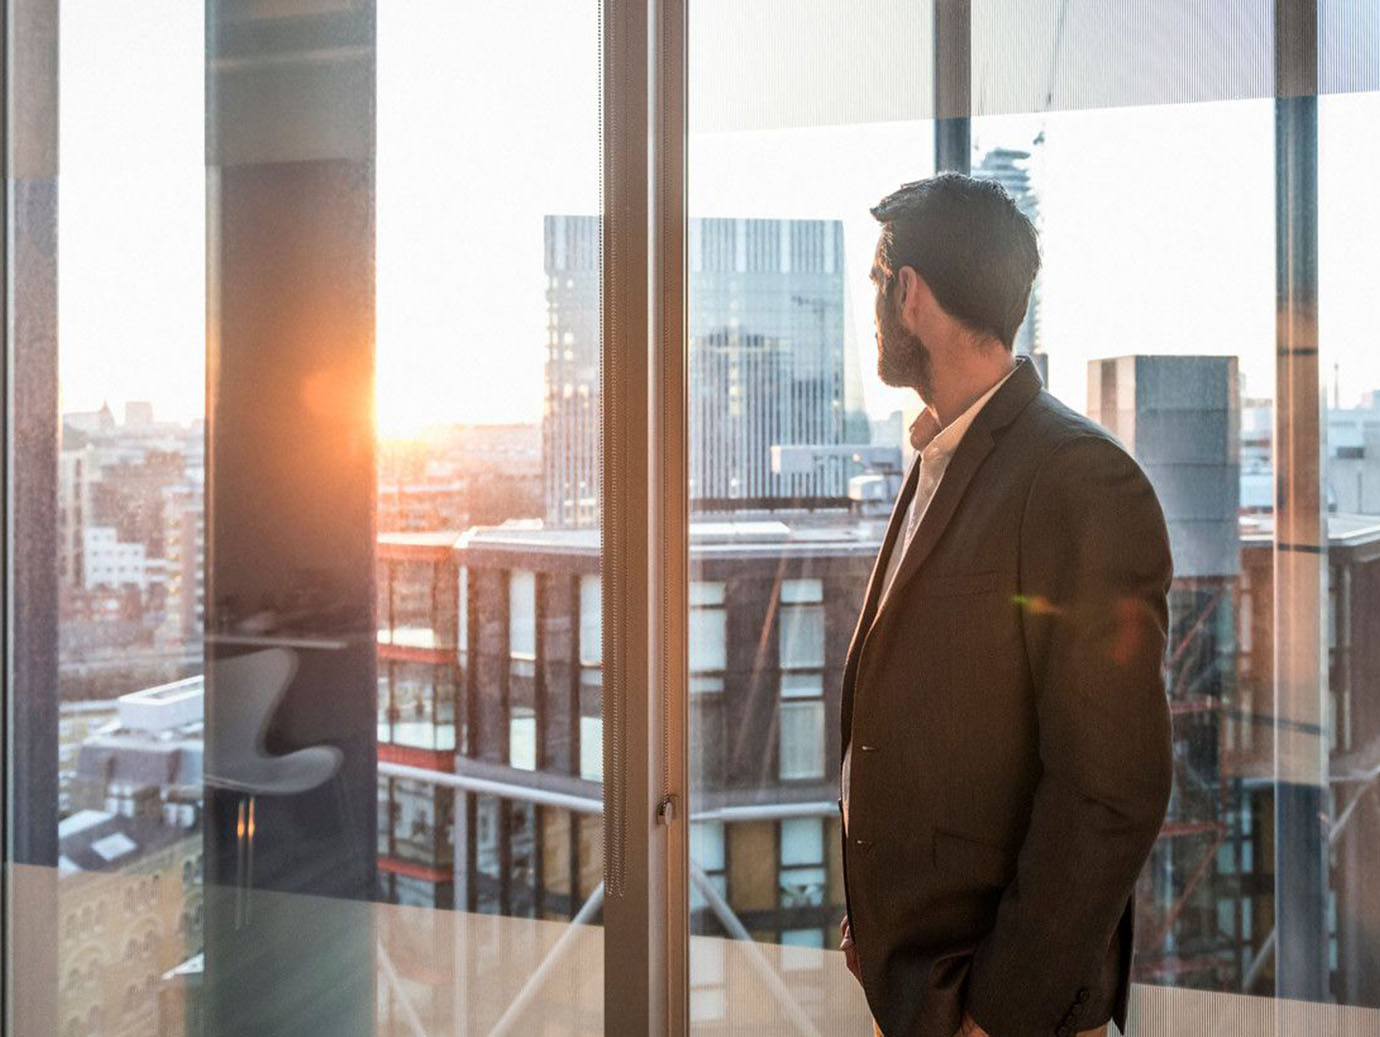 Office worker looking at view through window of modern office over city